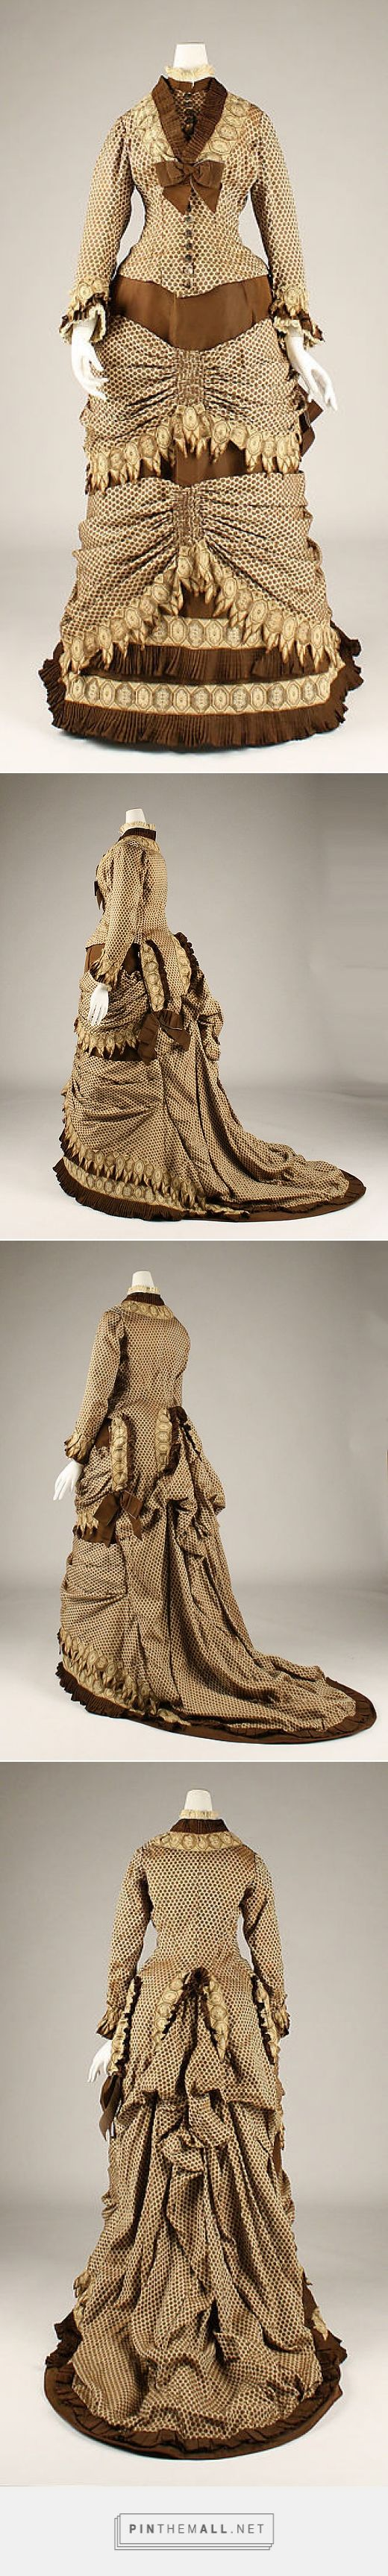 Dress 1873-79 American | The Metropolitan Museum of Art